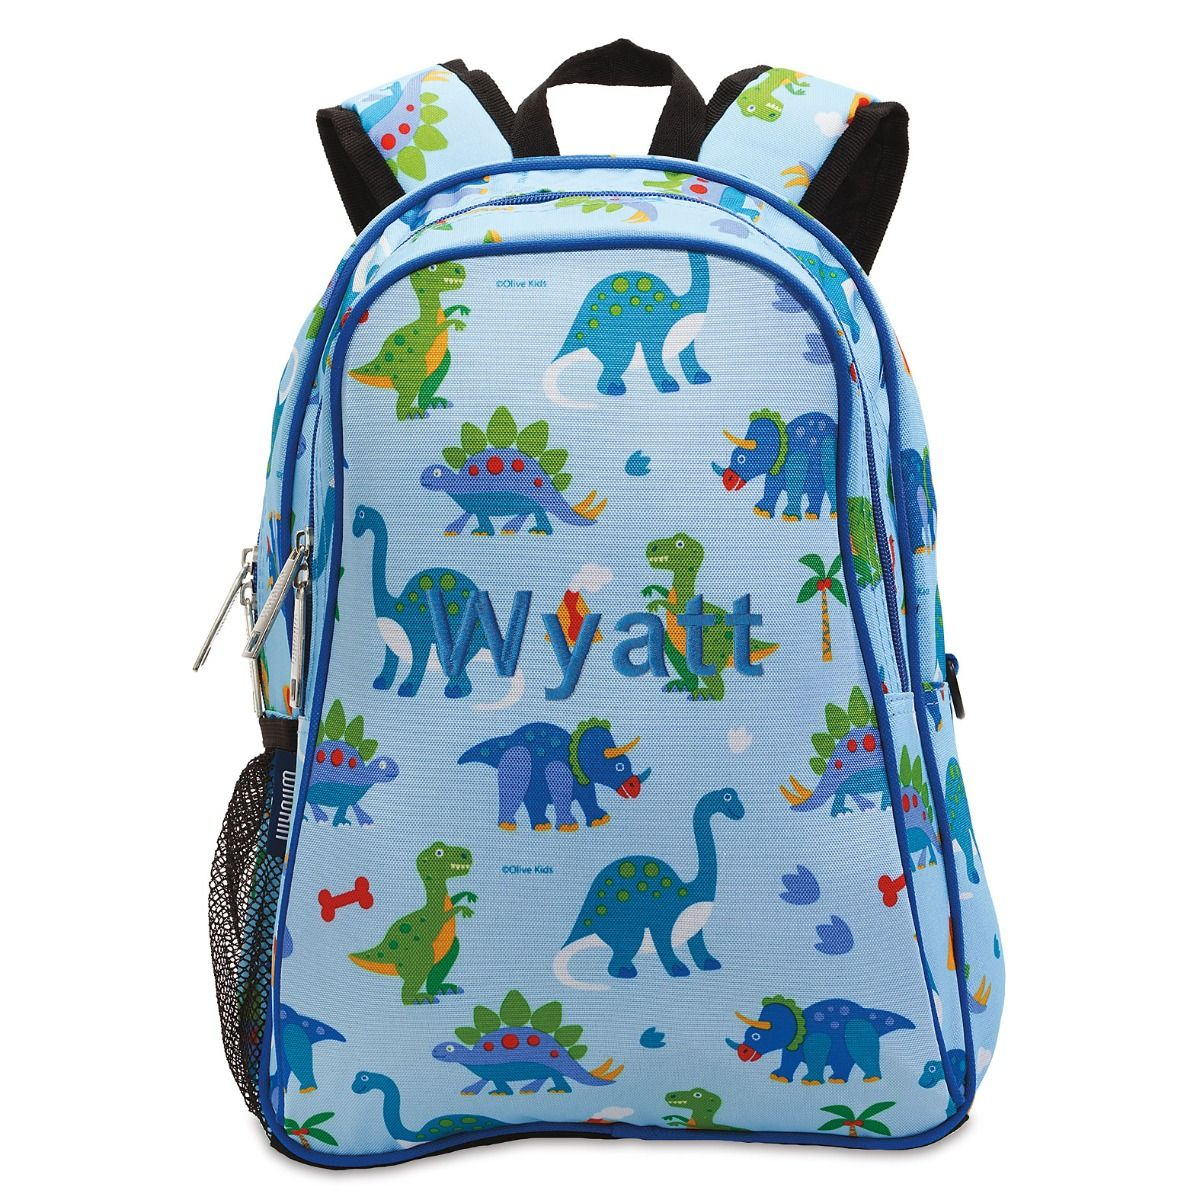 Personalized Dinosaur Land Backpack